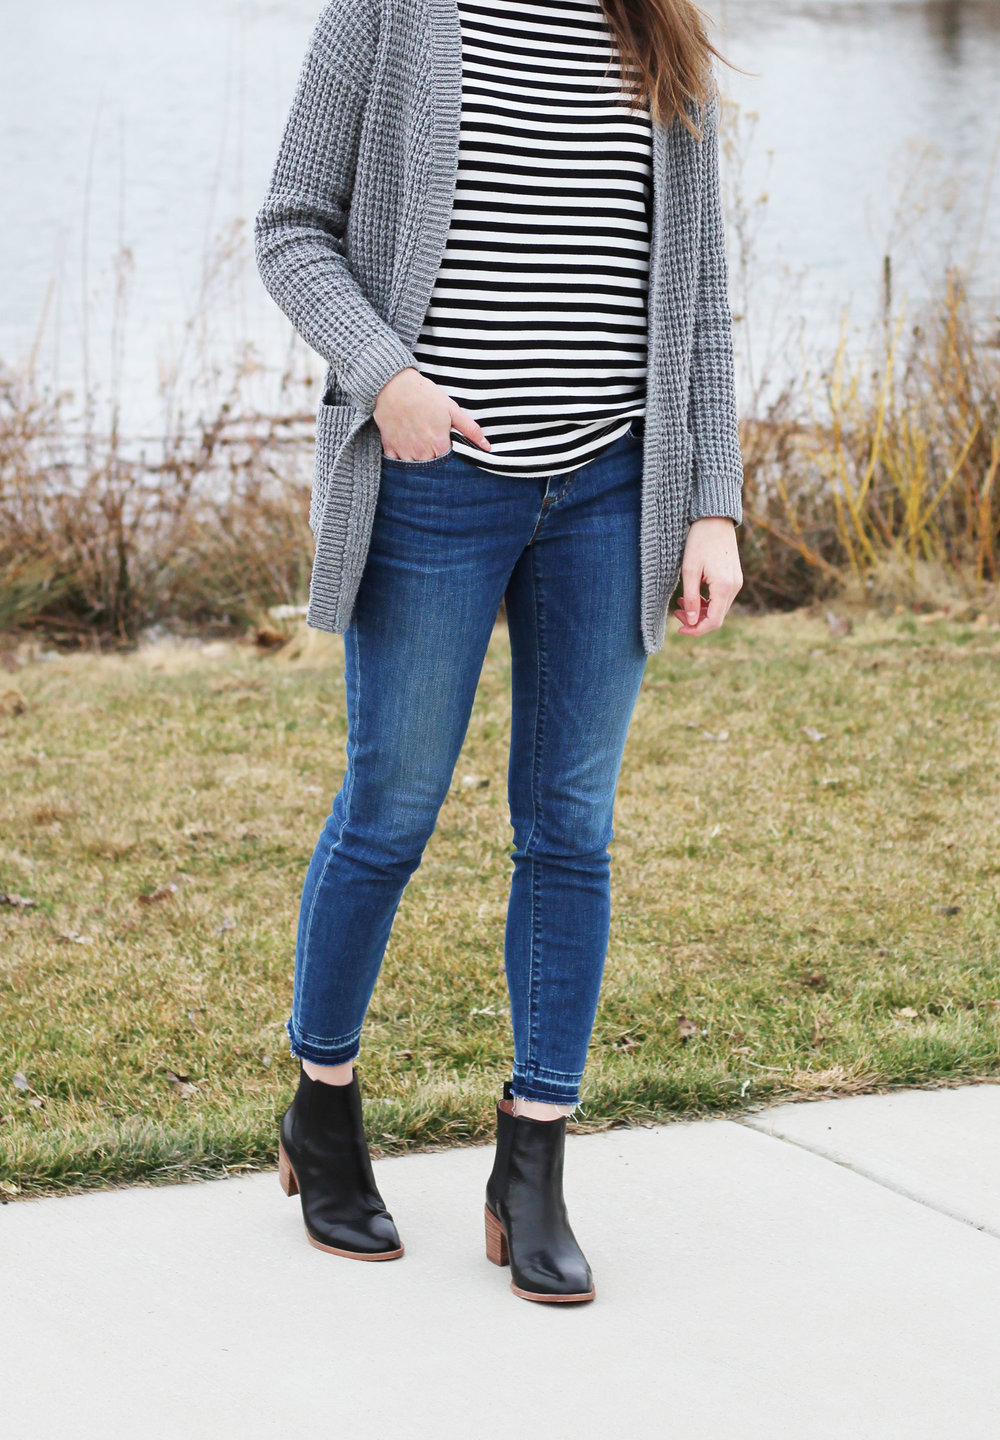 Madewell Frankie chelsea boots outfit with grey cardigan and stripes — Cotton Cashmere Cat Hair